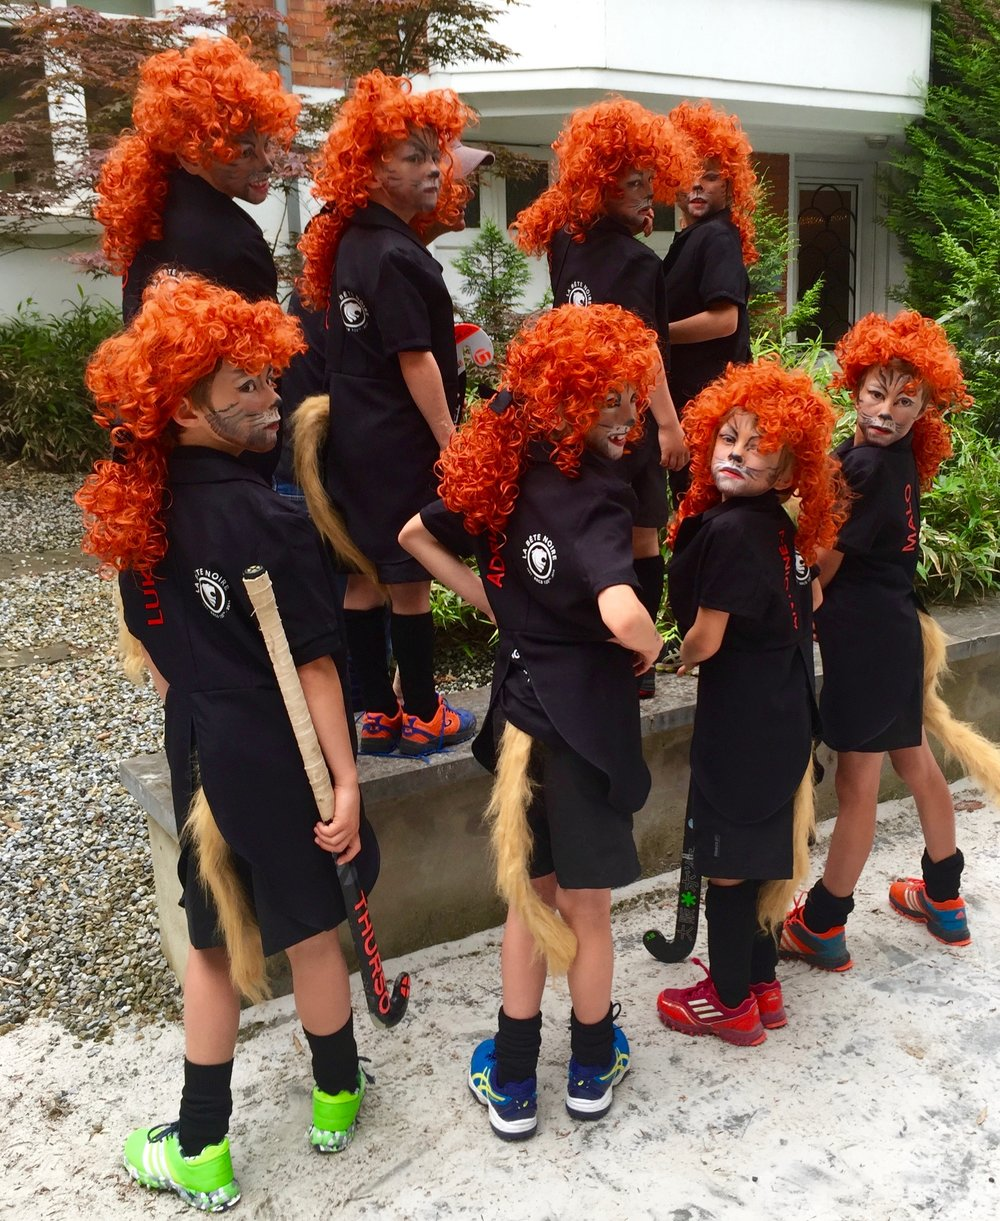 NataMakeUp - Grimage enfant - lions - hockey